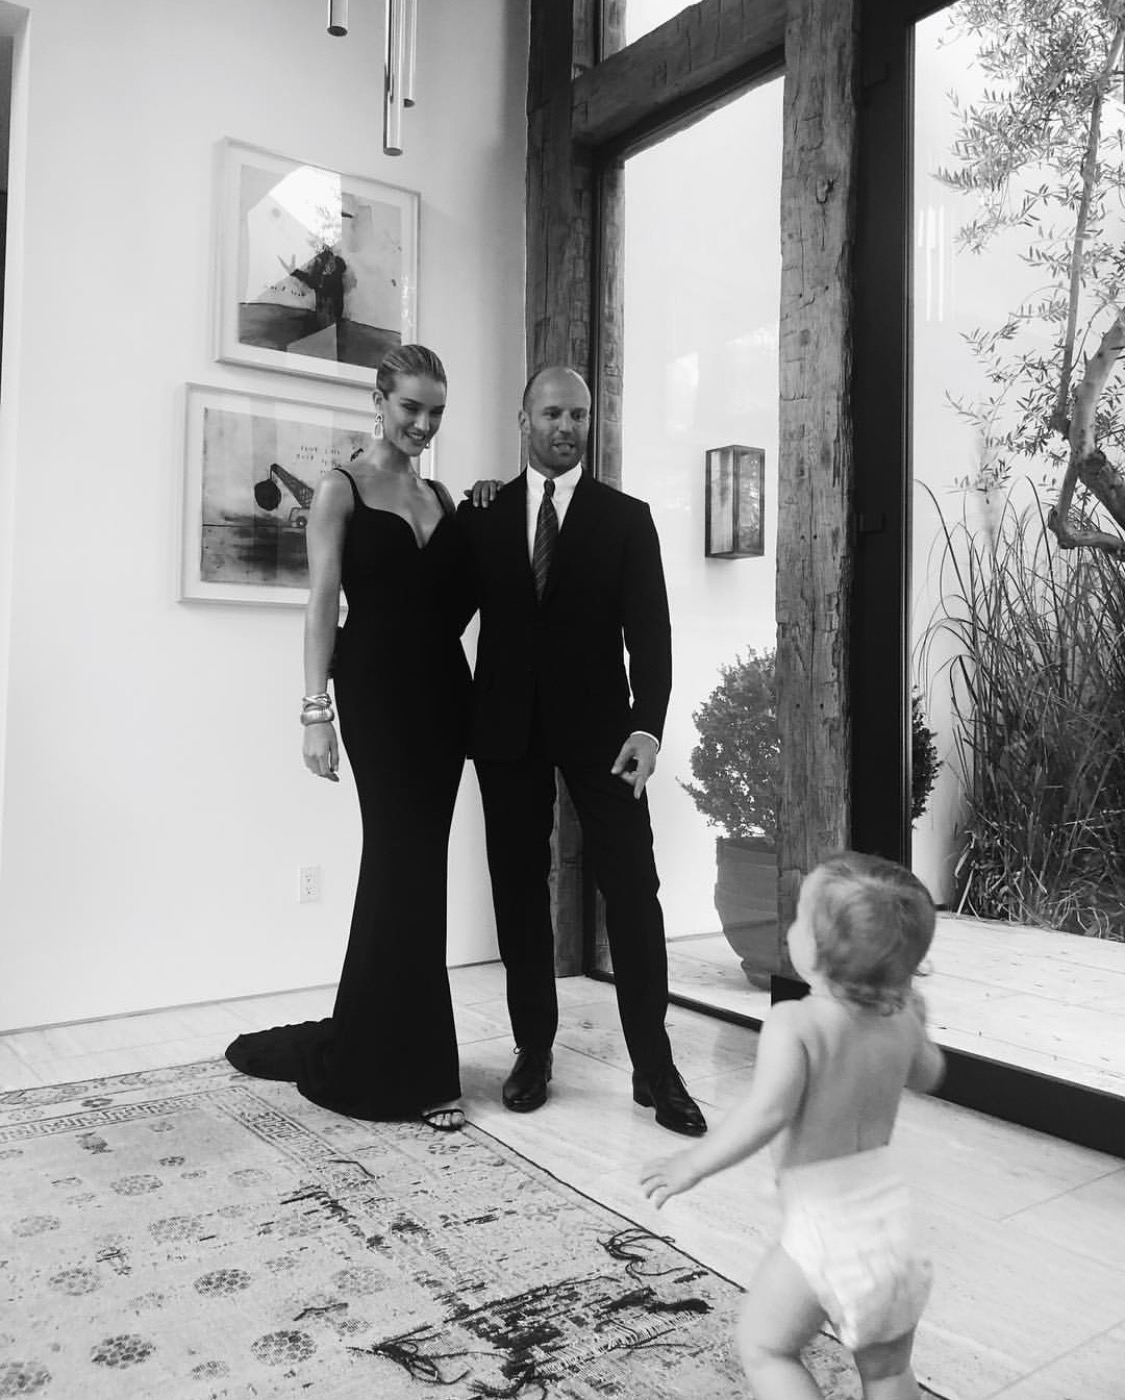 Rosie Huntington-Whiteley gave the sweetest glimpse of her baby son as she and Jason Statham get red carpet ready